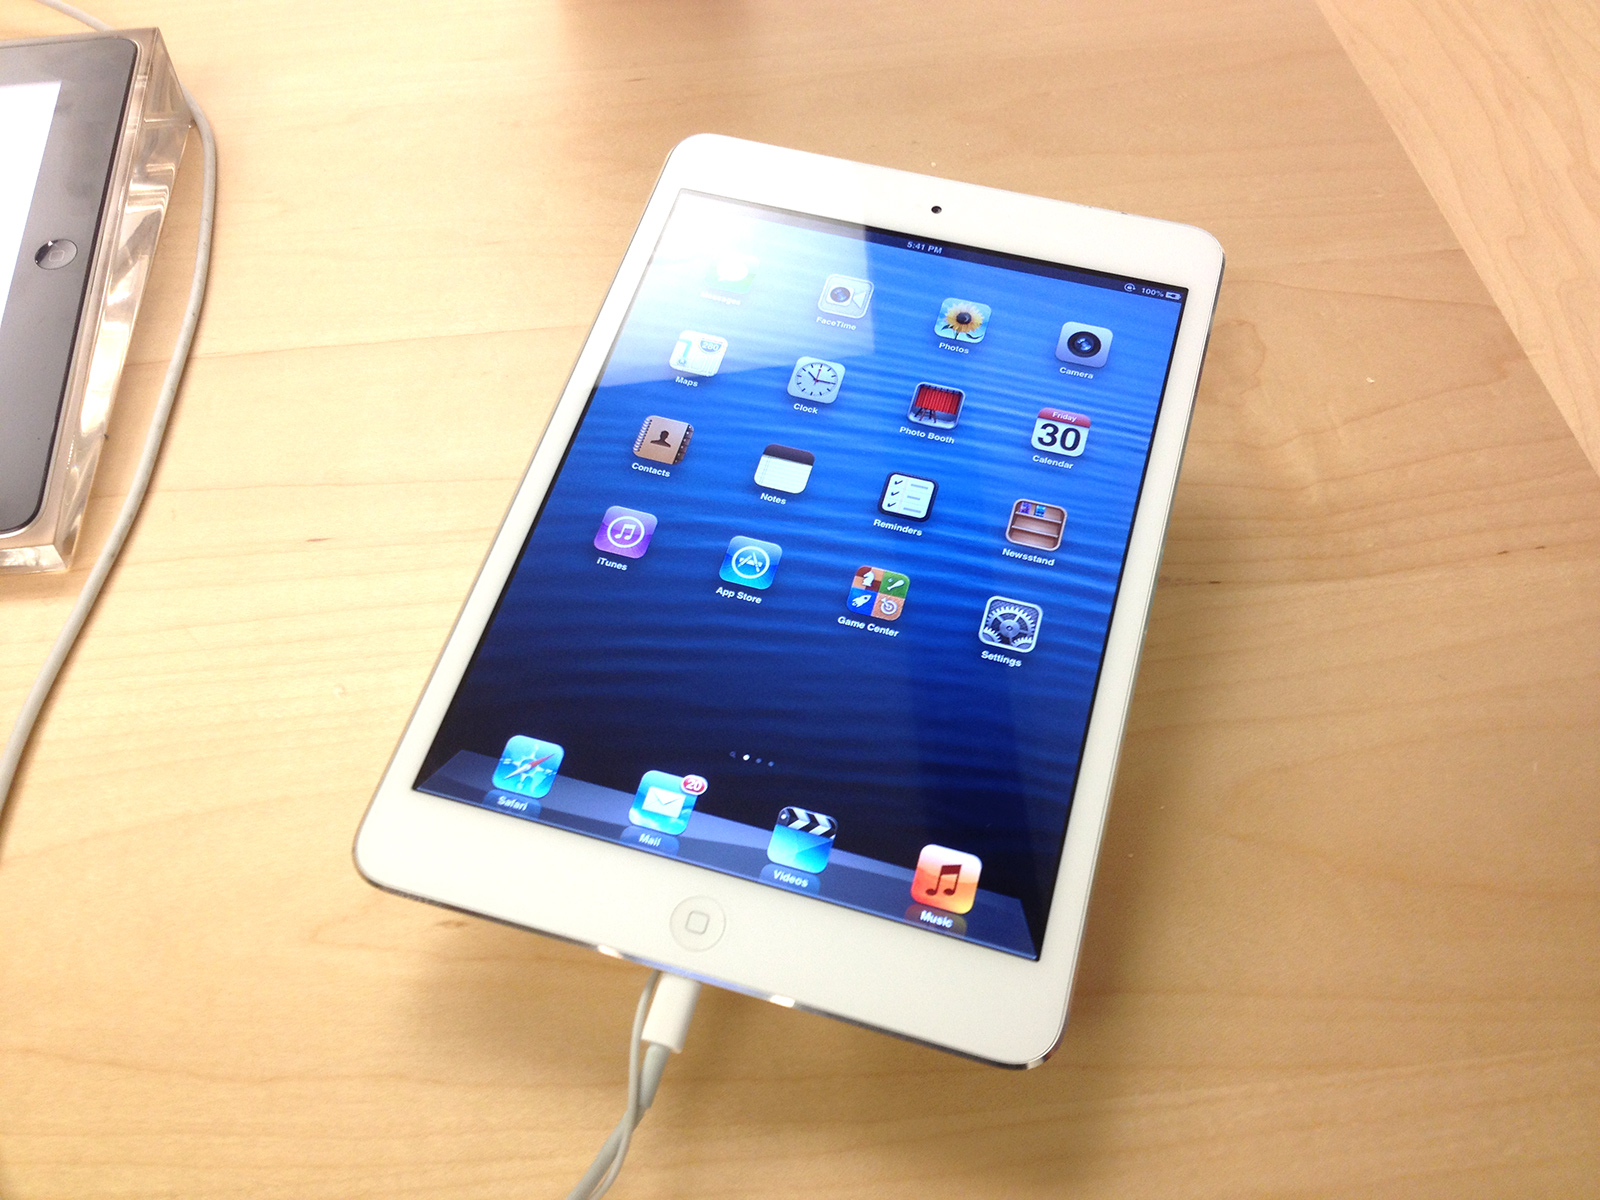 Apple's 7.9-inch iPad Mini